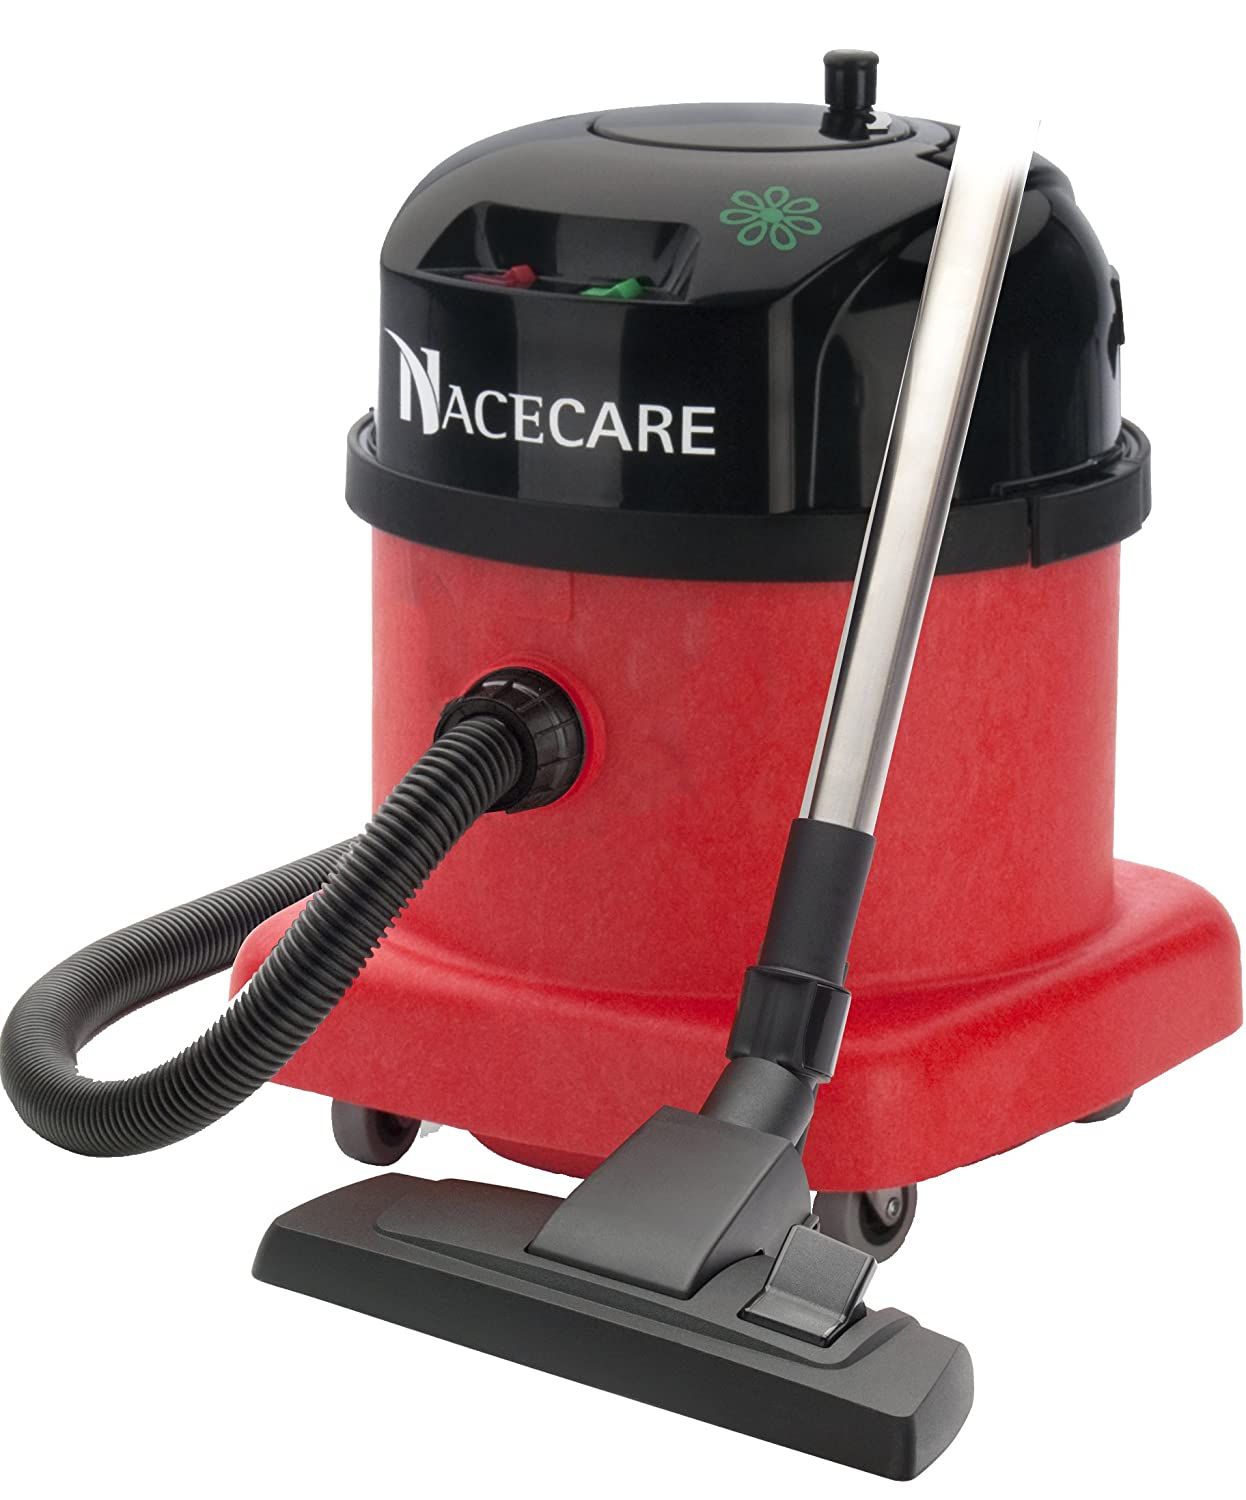 NaceCare 900767 PPR380 Canister Vacuum with AST1 Kit, 4.5 gal